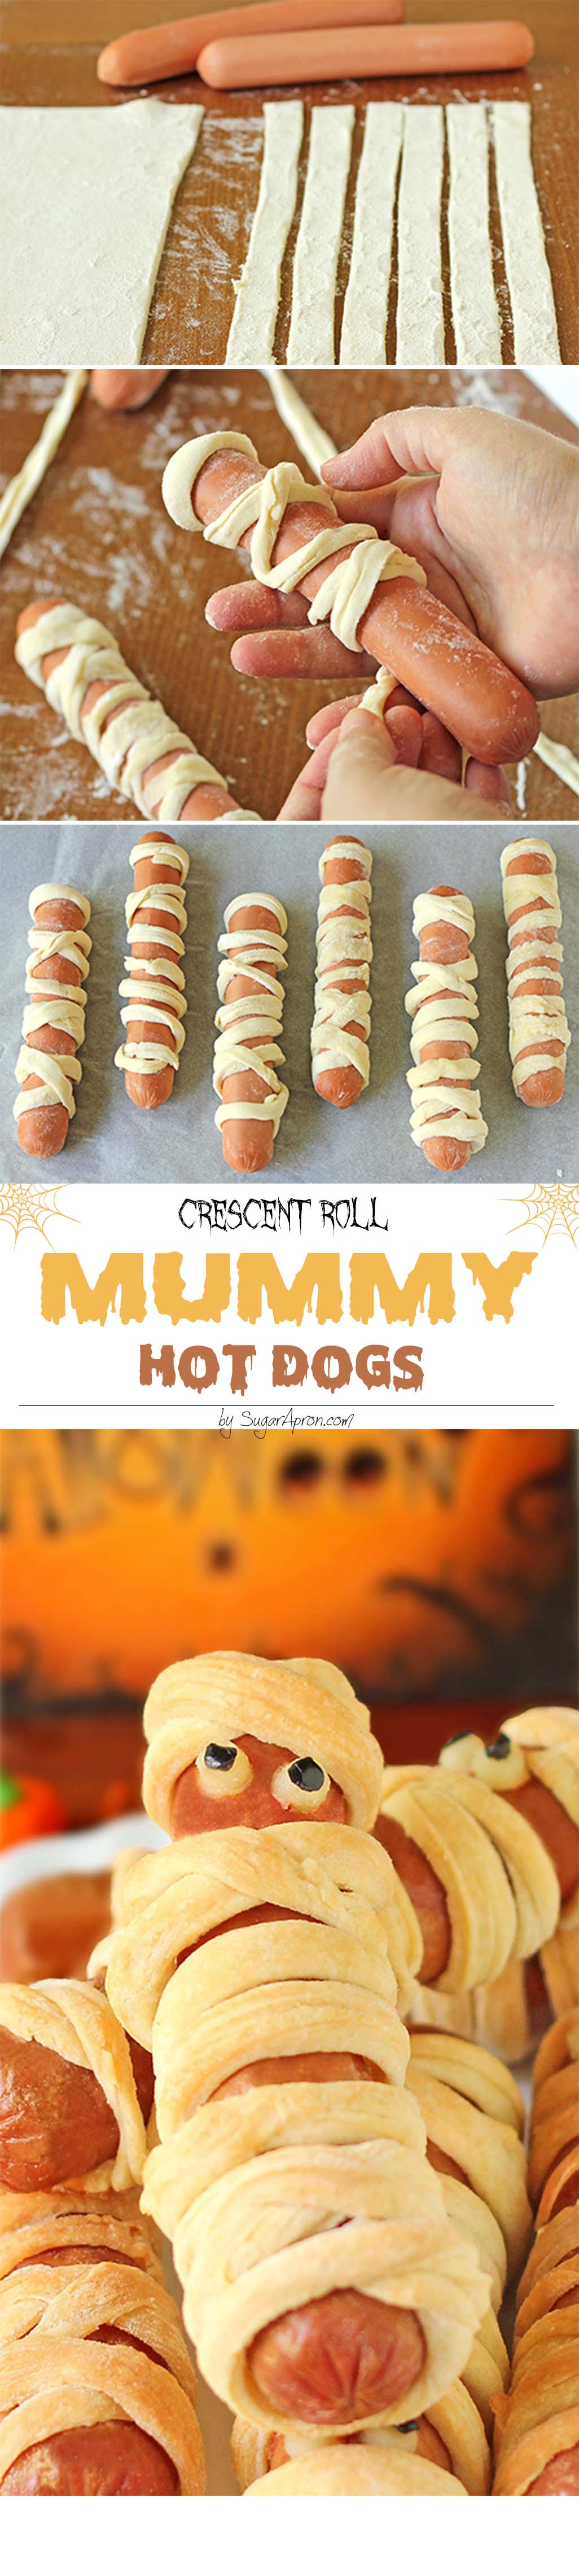 Crescent Roll Mummy Hot Dogs - Aren't they scary sweet?